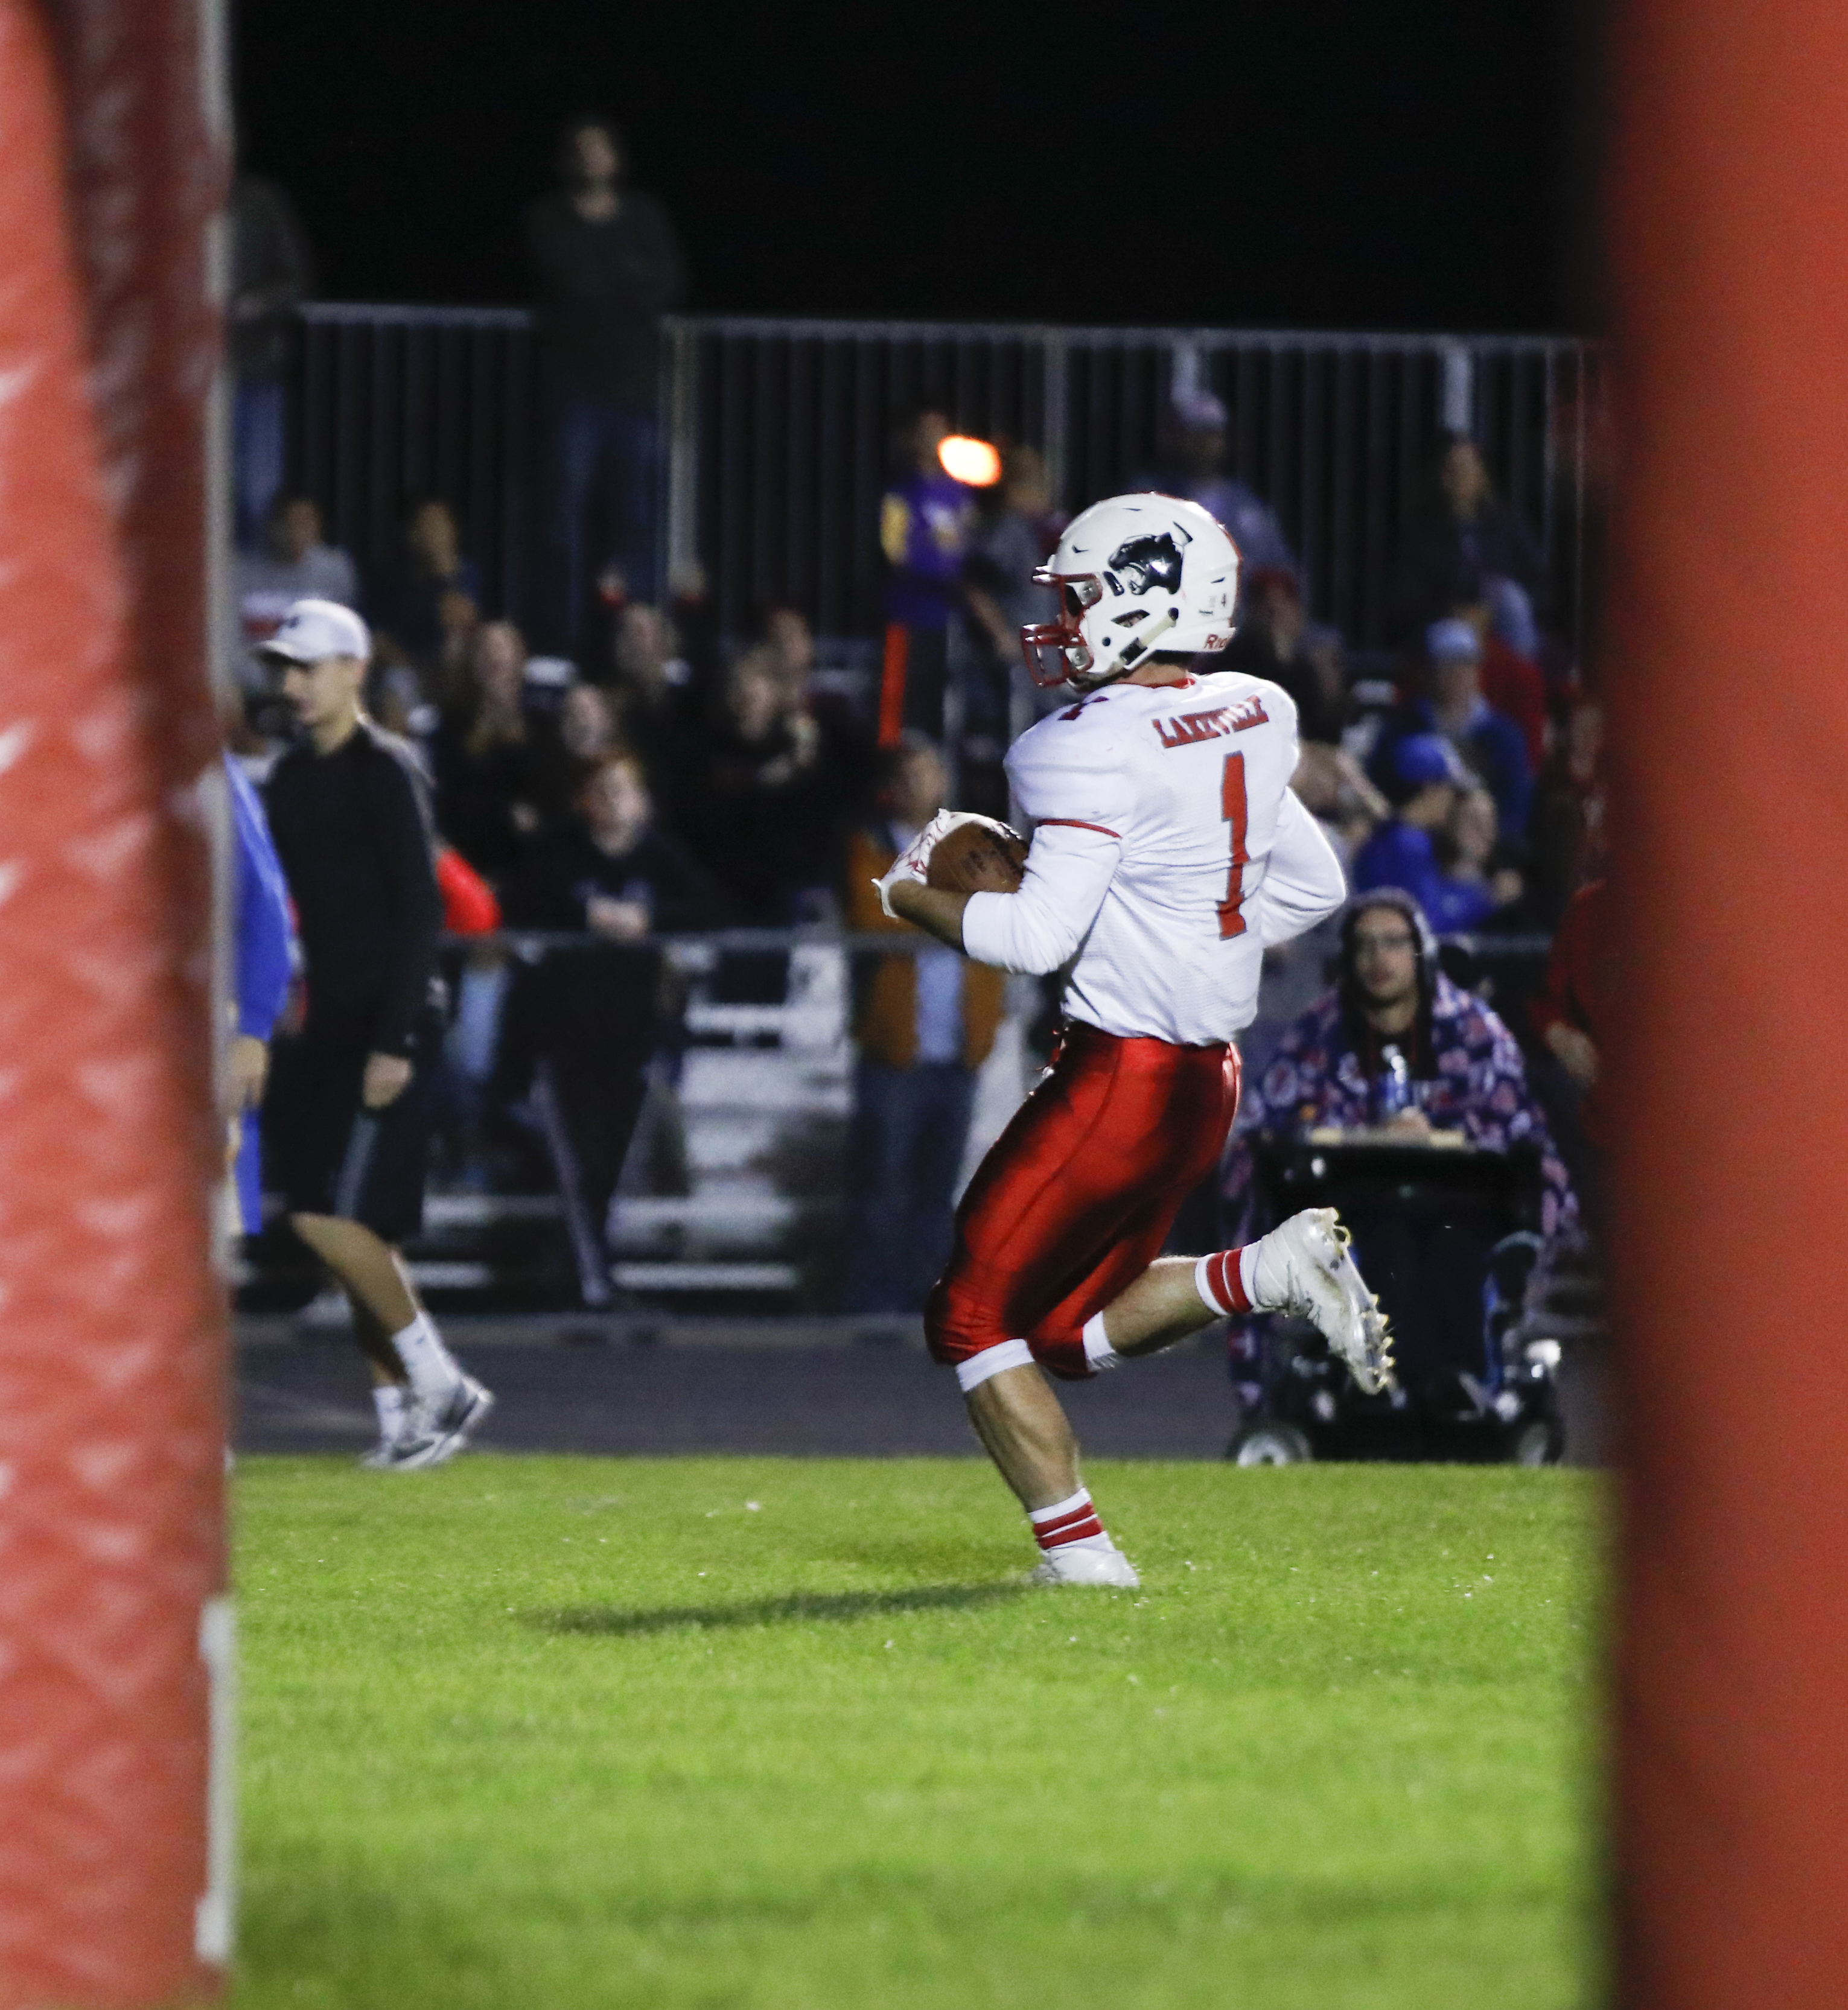 Ryan Dalrymple (1) of Lakeville North runs the ball in to score a touchdown helping his teal defeat rival Lakeville South 35-0 away. Photo by Chris Juhn